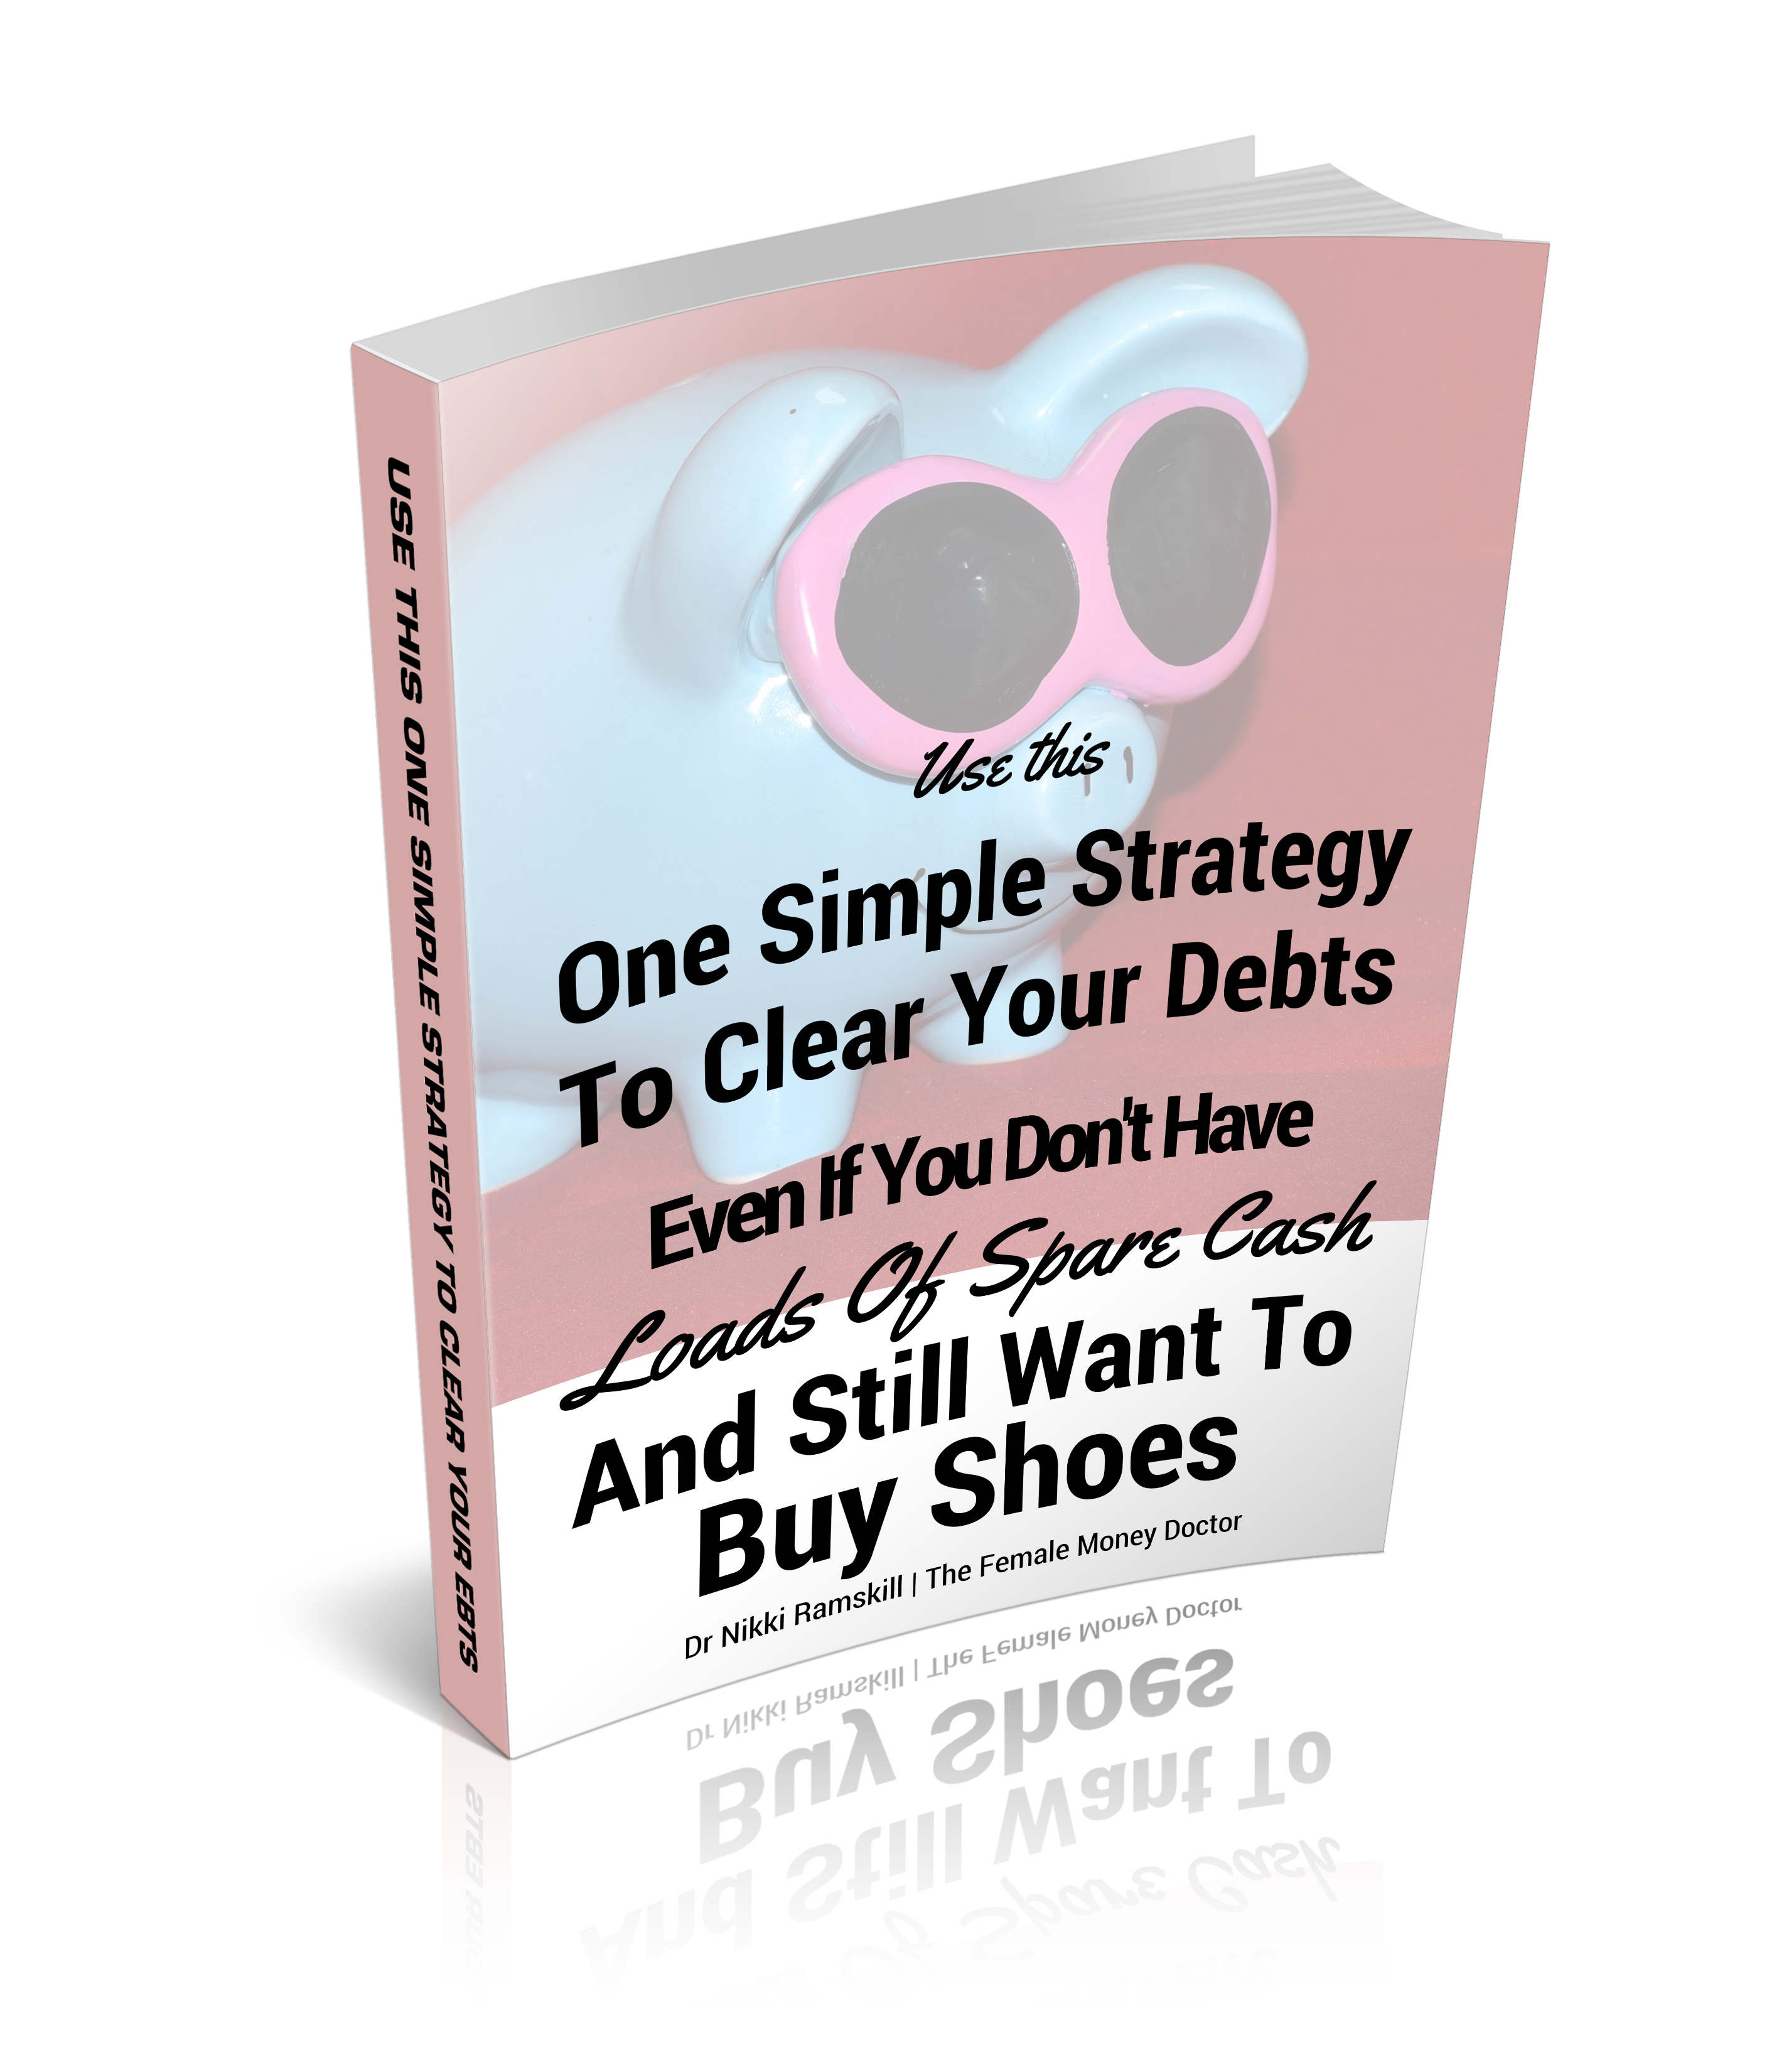 Click here to find out how to clear your debt forever!